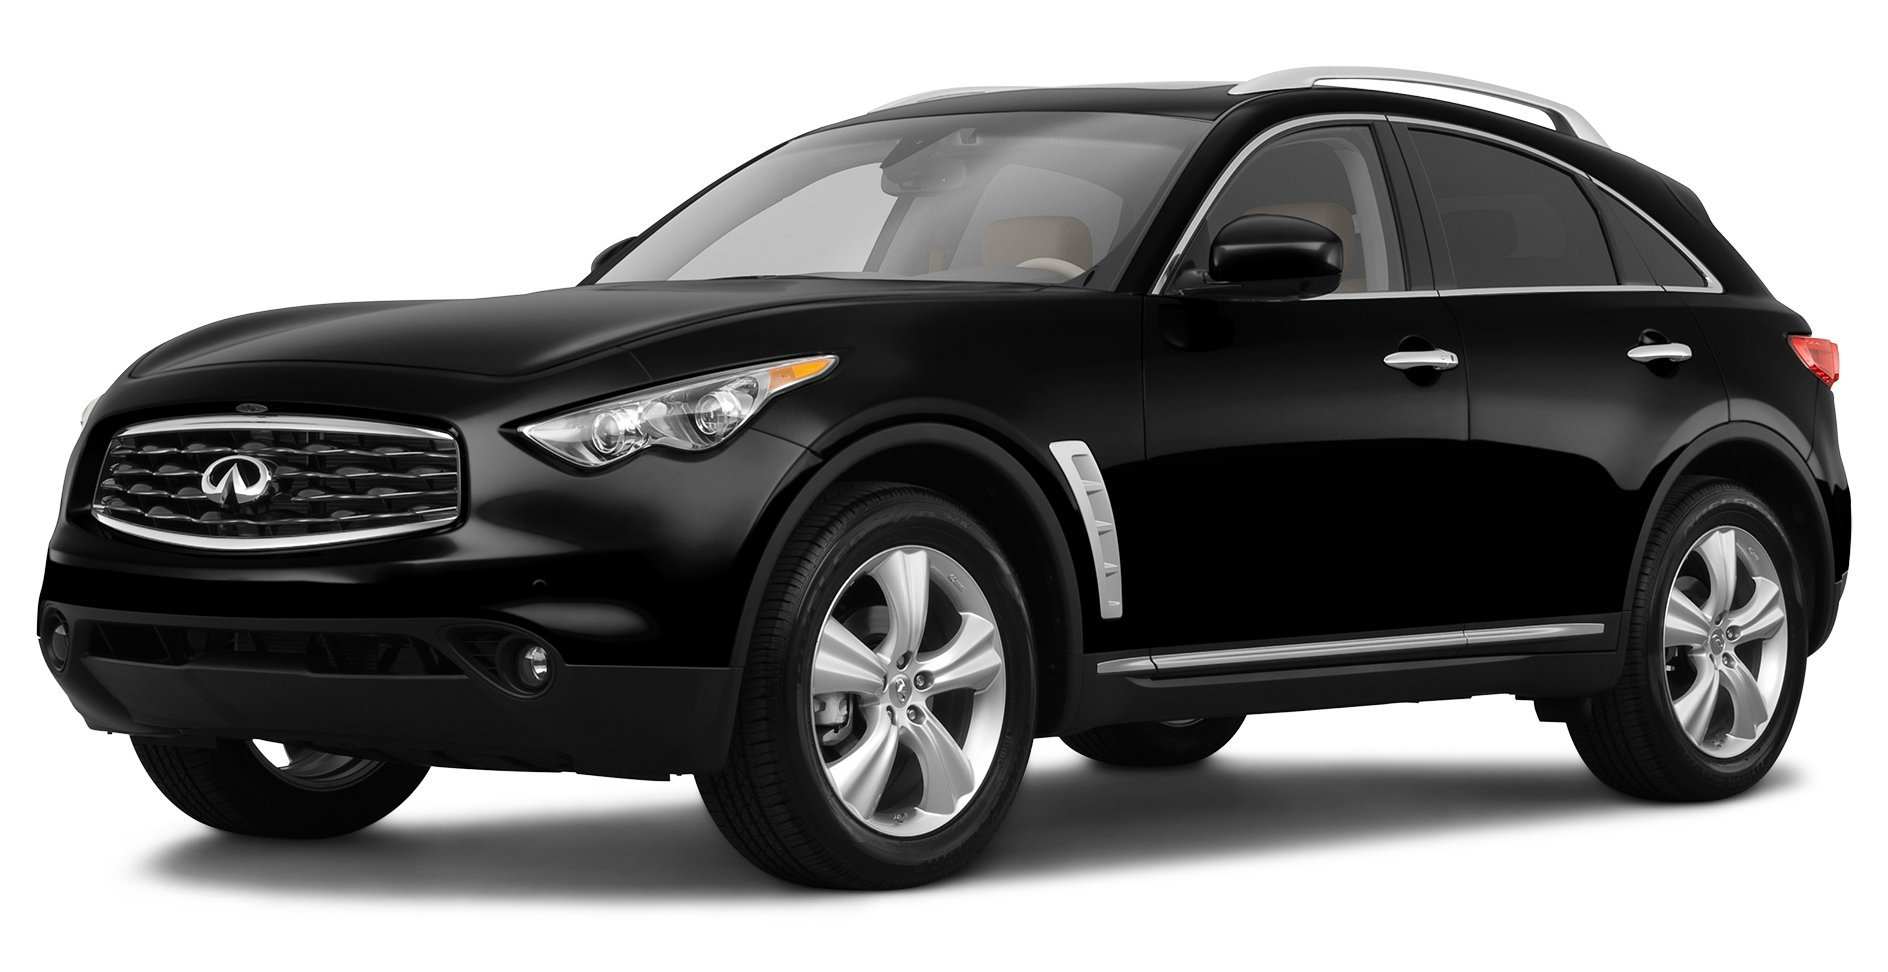 Amazon 2011 infiniti fx35 reviews images and specs vehicles 2011 infiniti fx35 all wheel drive 4 door vanachro Choice Image